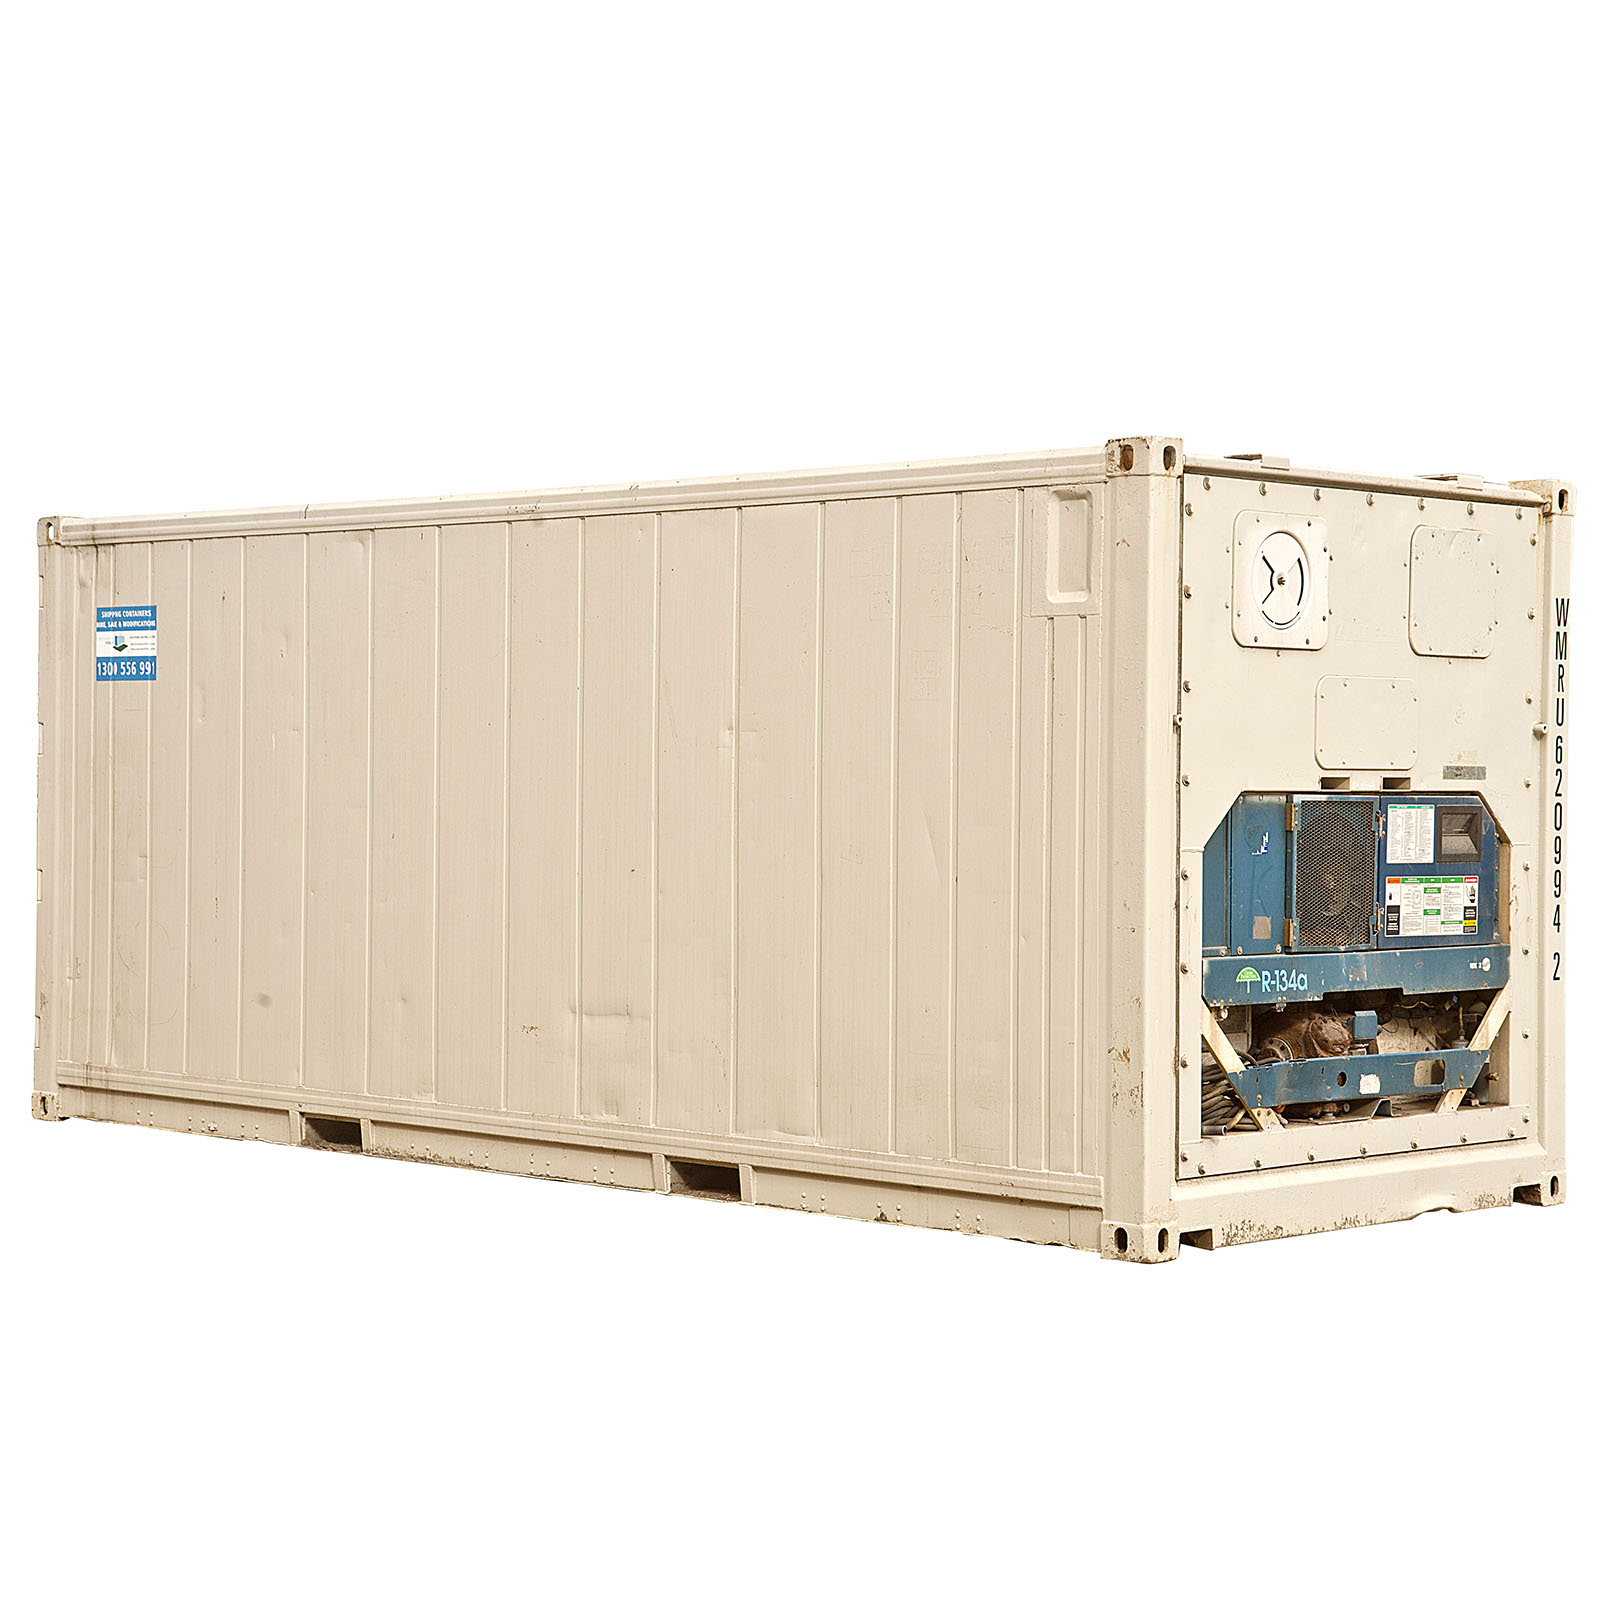 Shipping storage containers for sale new autos for Shipping containers for sale in minnesota